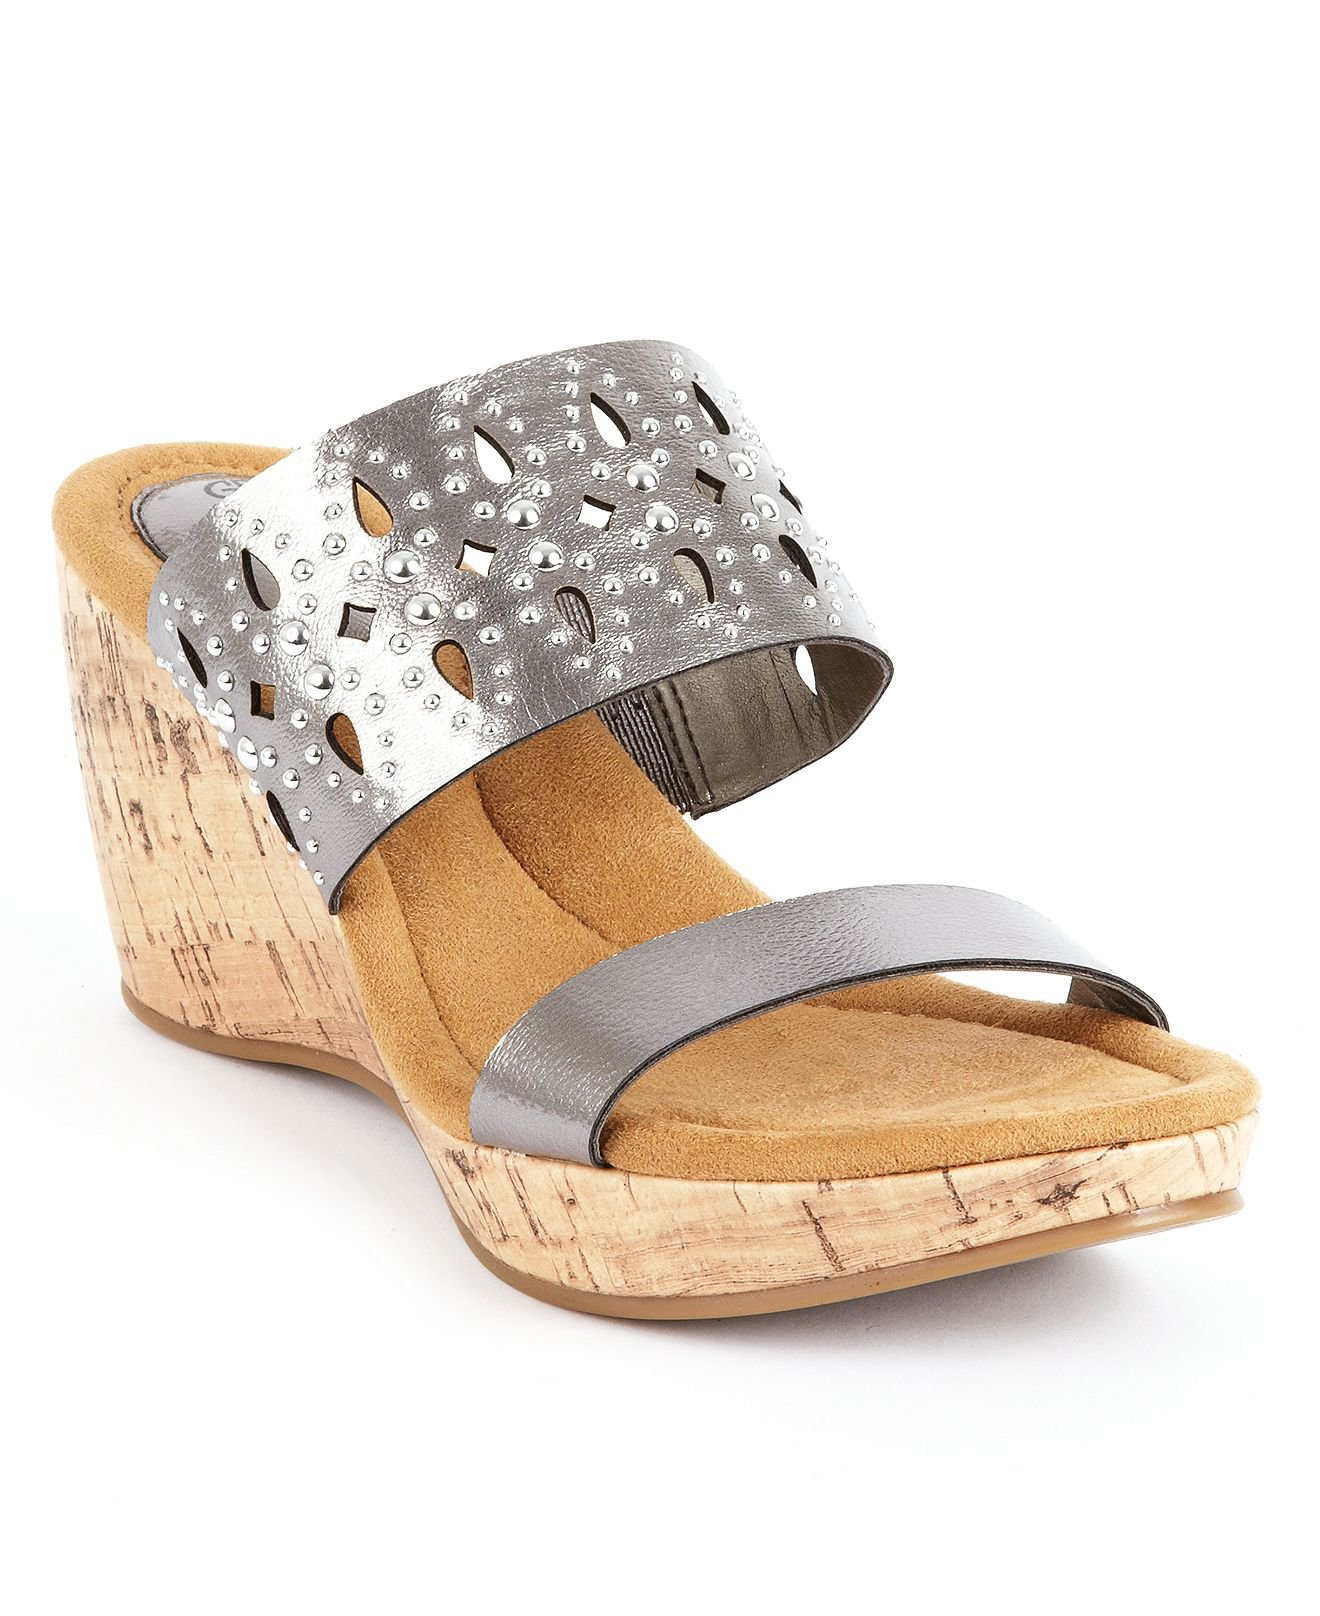 giani bernini shoes priscilla wedge from macys shoes